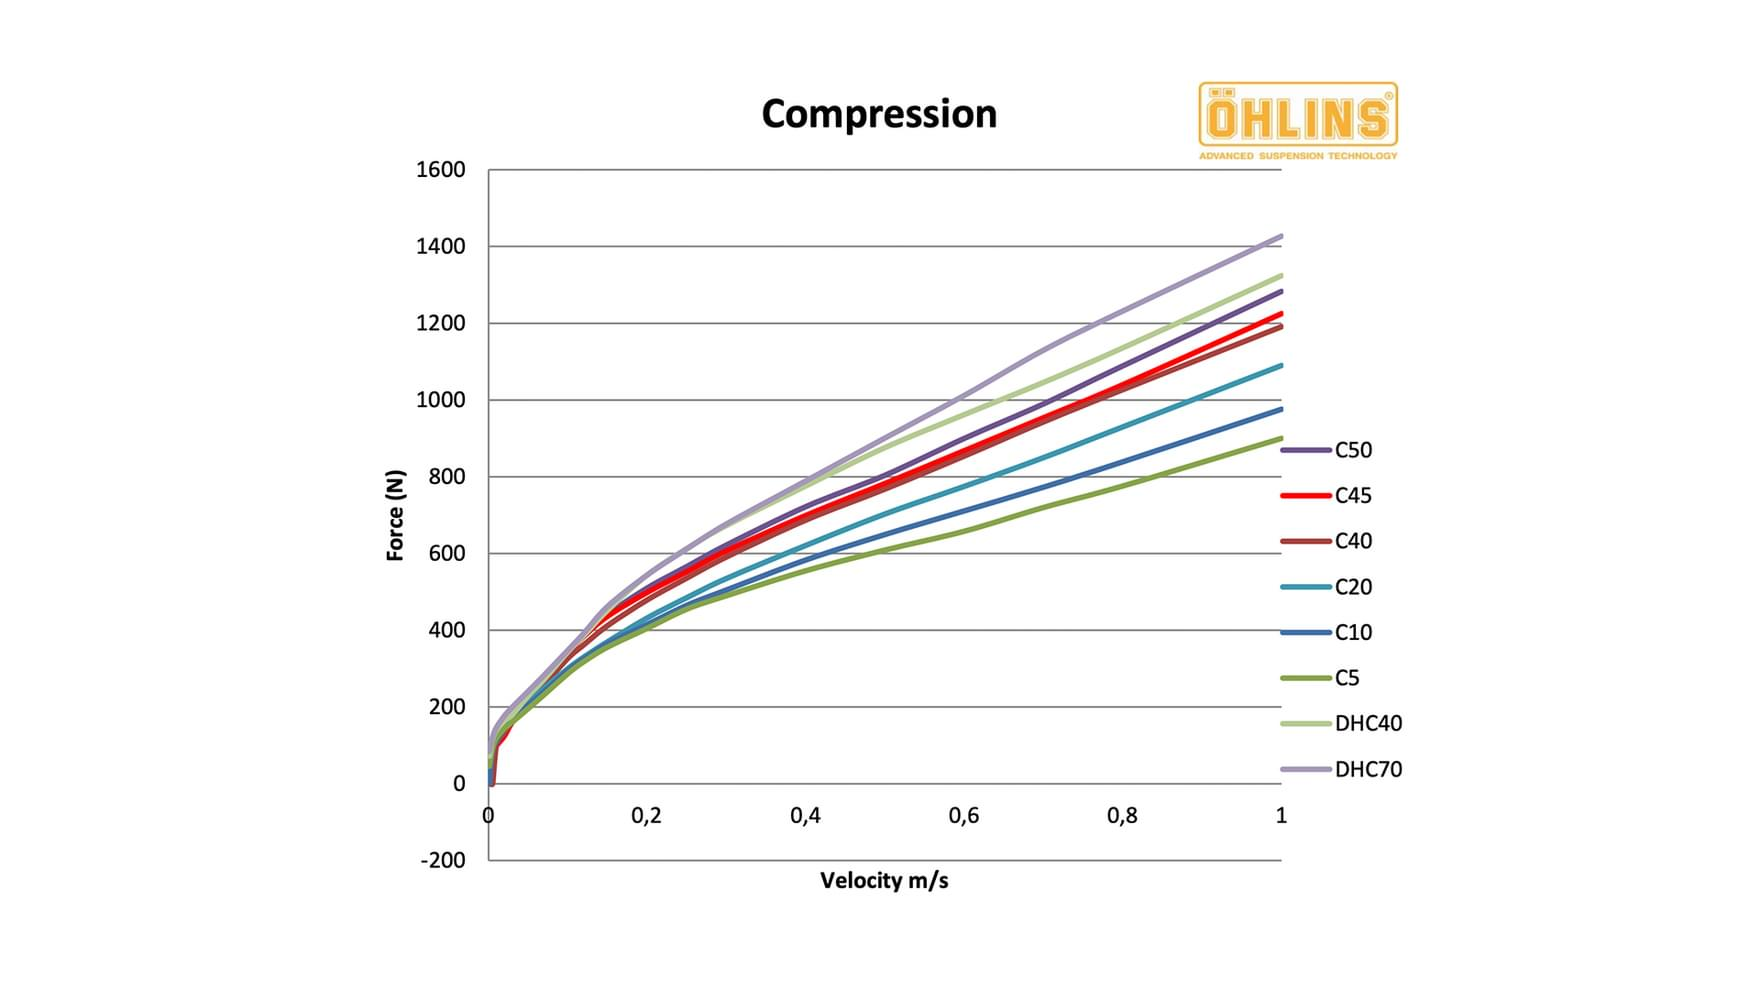 Ohlins TTX compression tuning